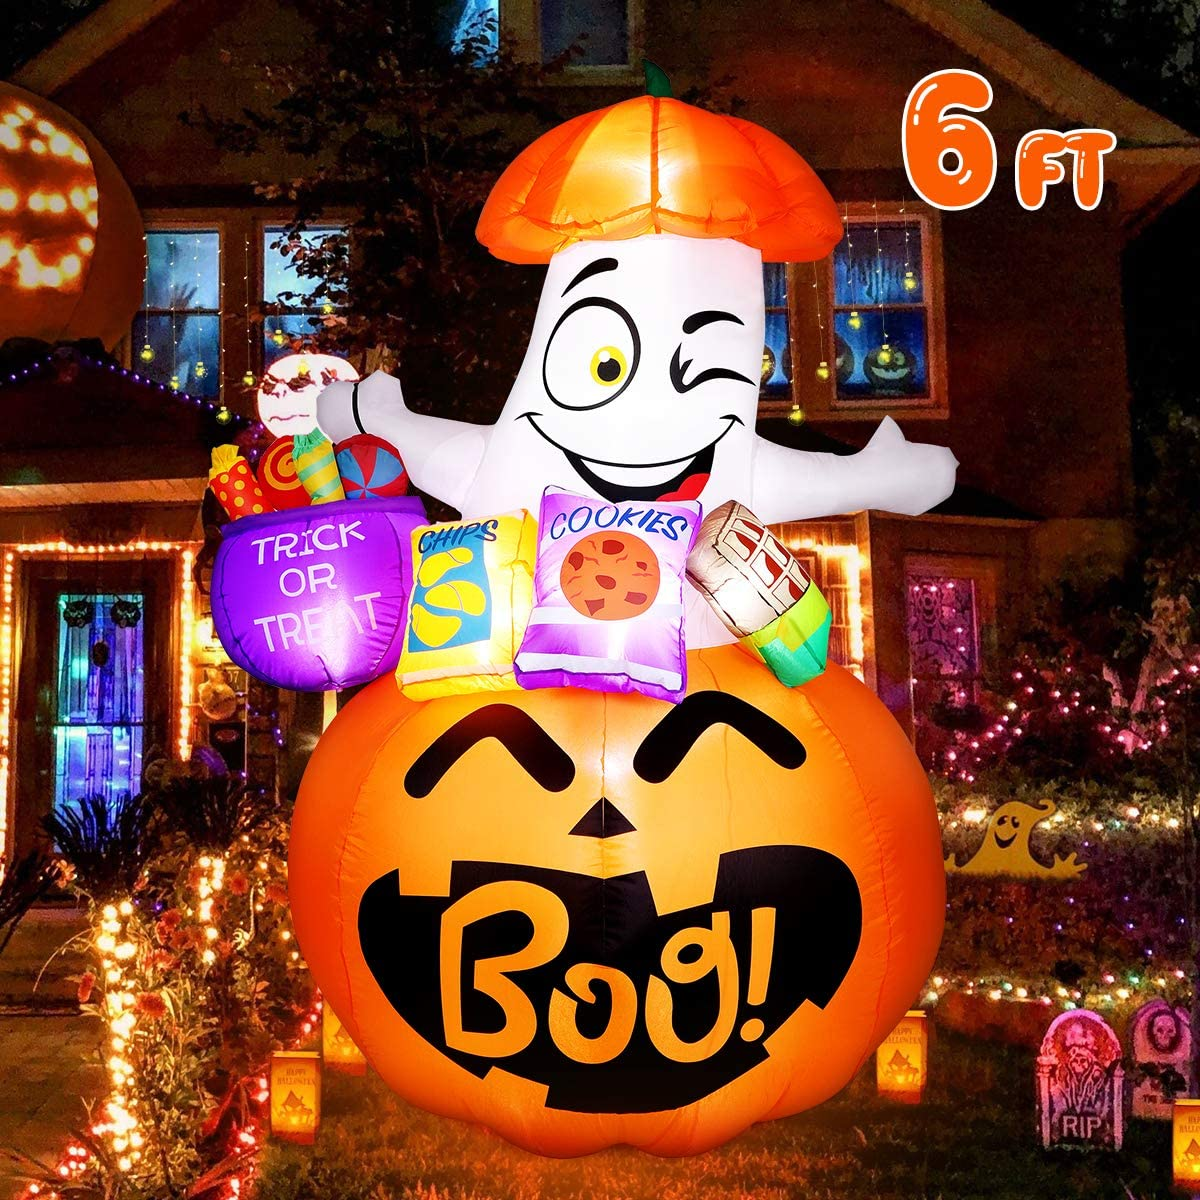 Halloween Inflatables Ghost Decorations, 6FT Halloween Blow Up Party Decor with Built-in LED Lights for Outdoor Yard Lawn